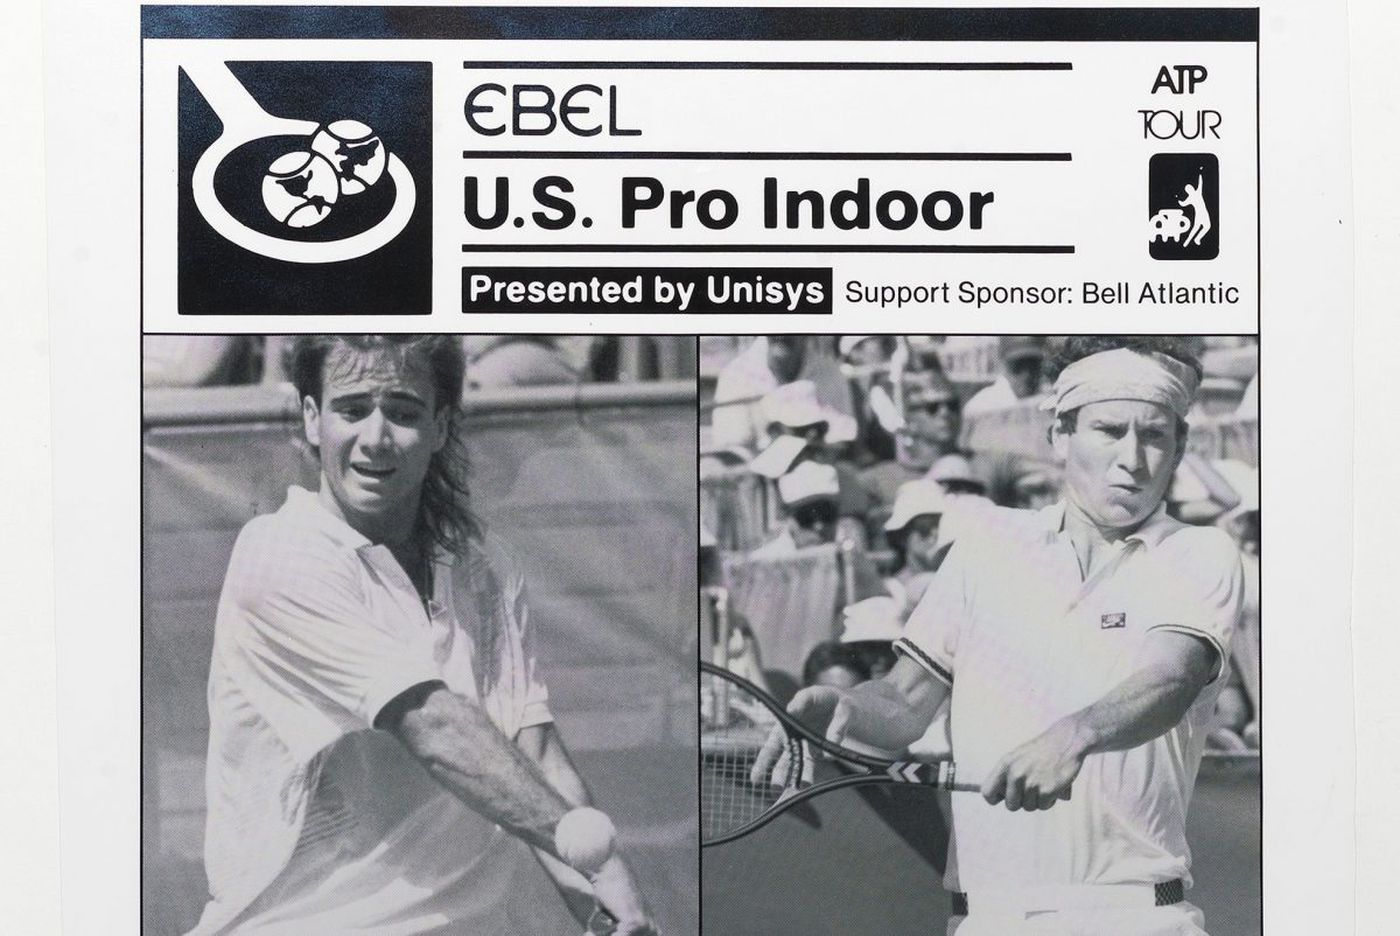 When Philly was an incubator for tennis talent